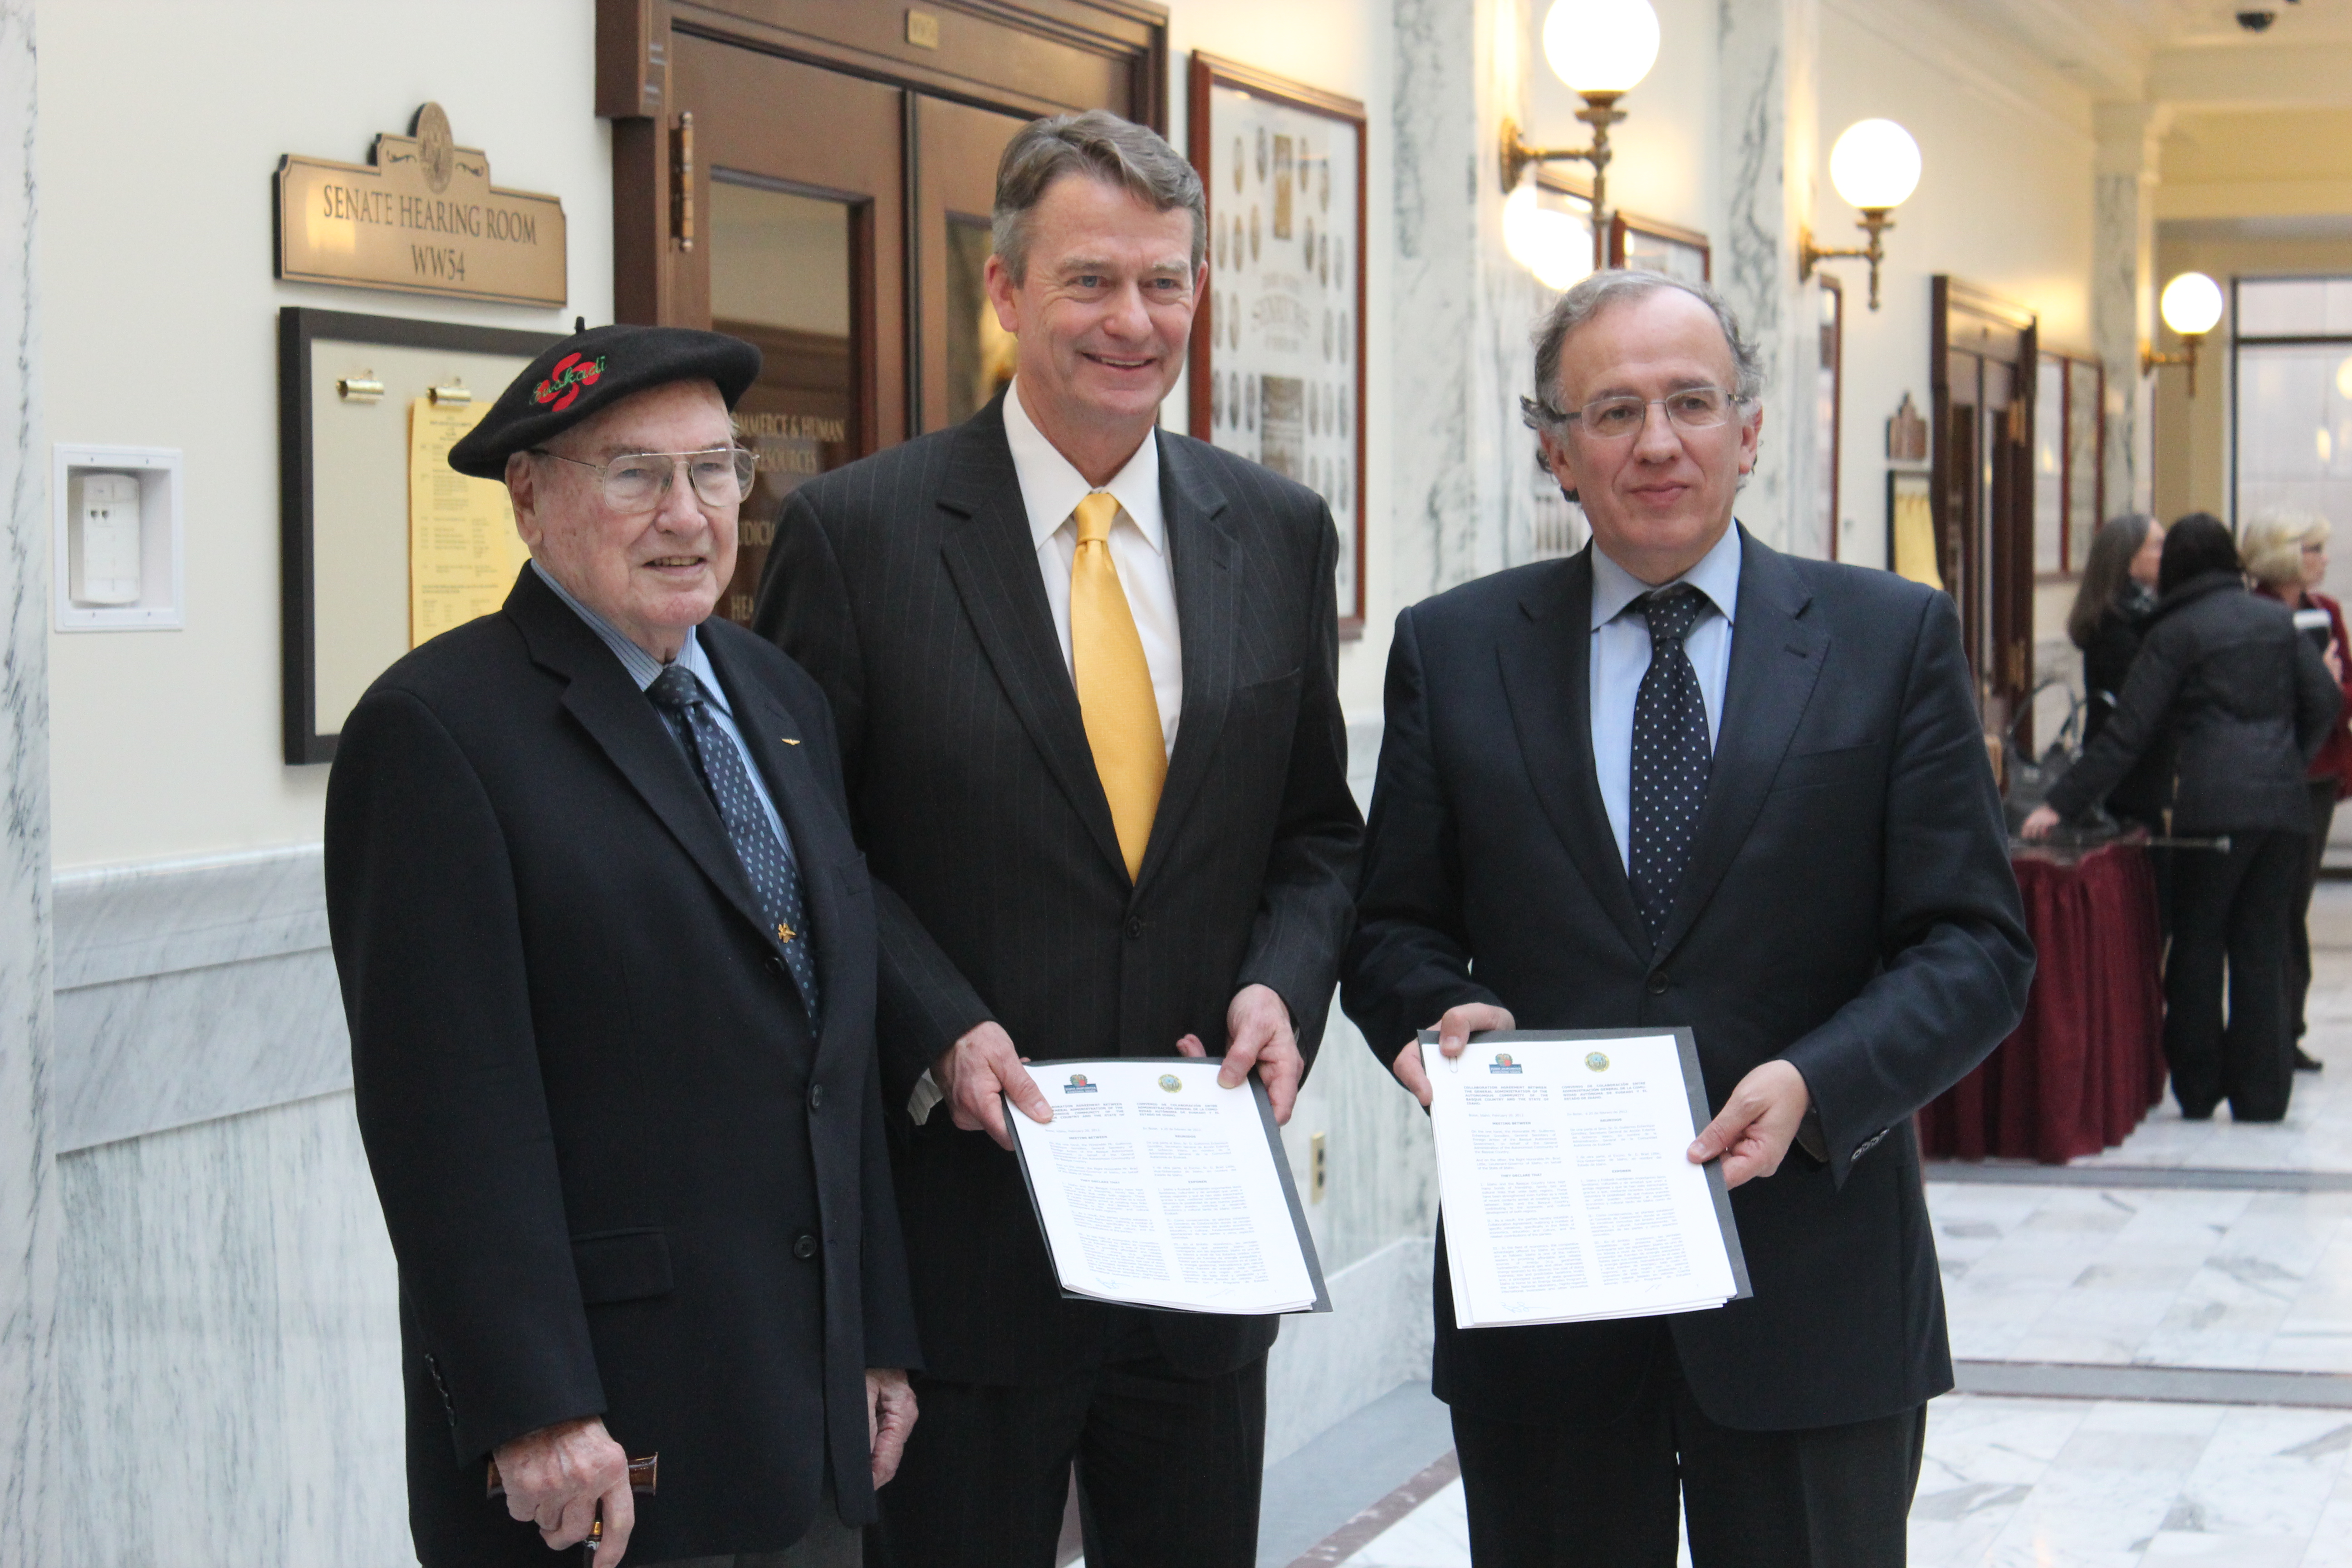 The Basque Government signs a partnership agreement with the State of Idaho